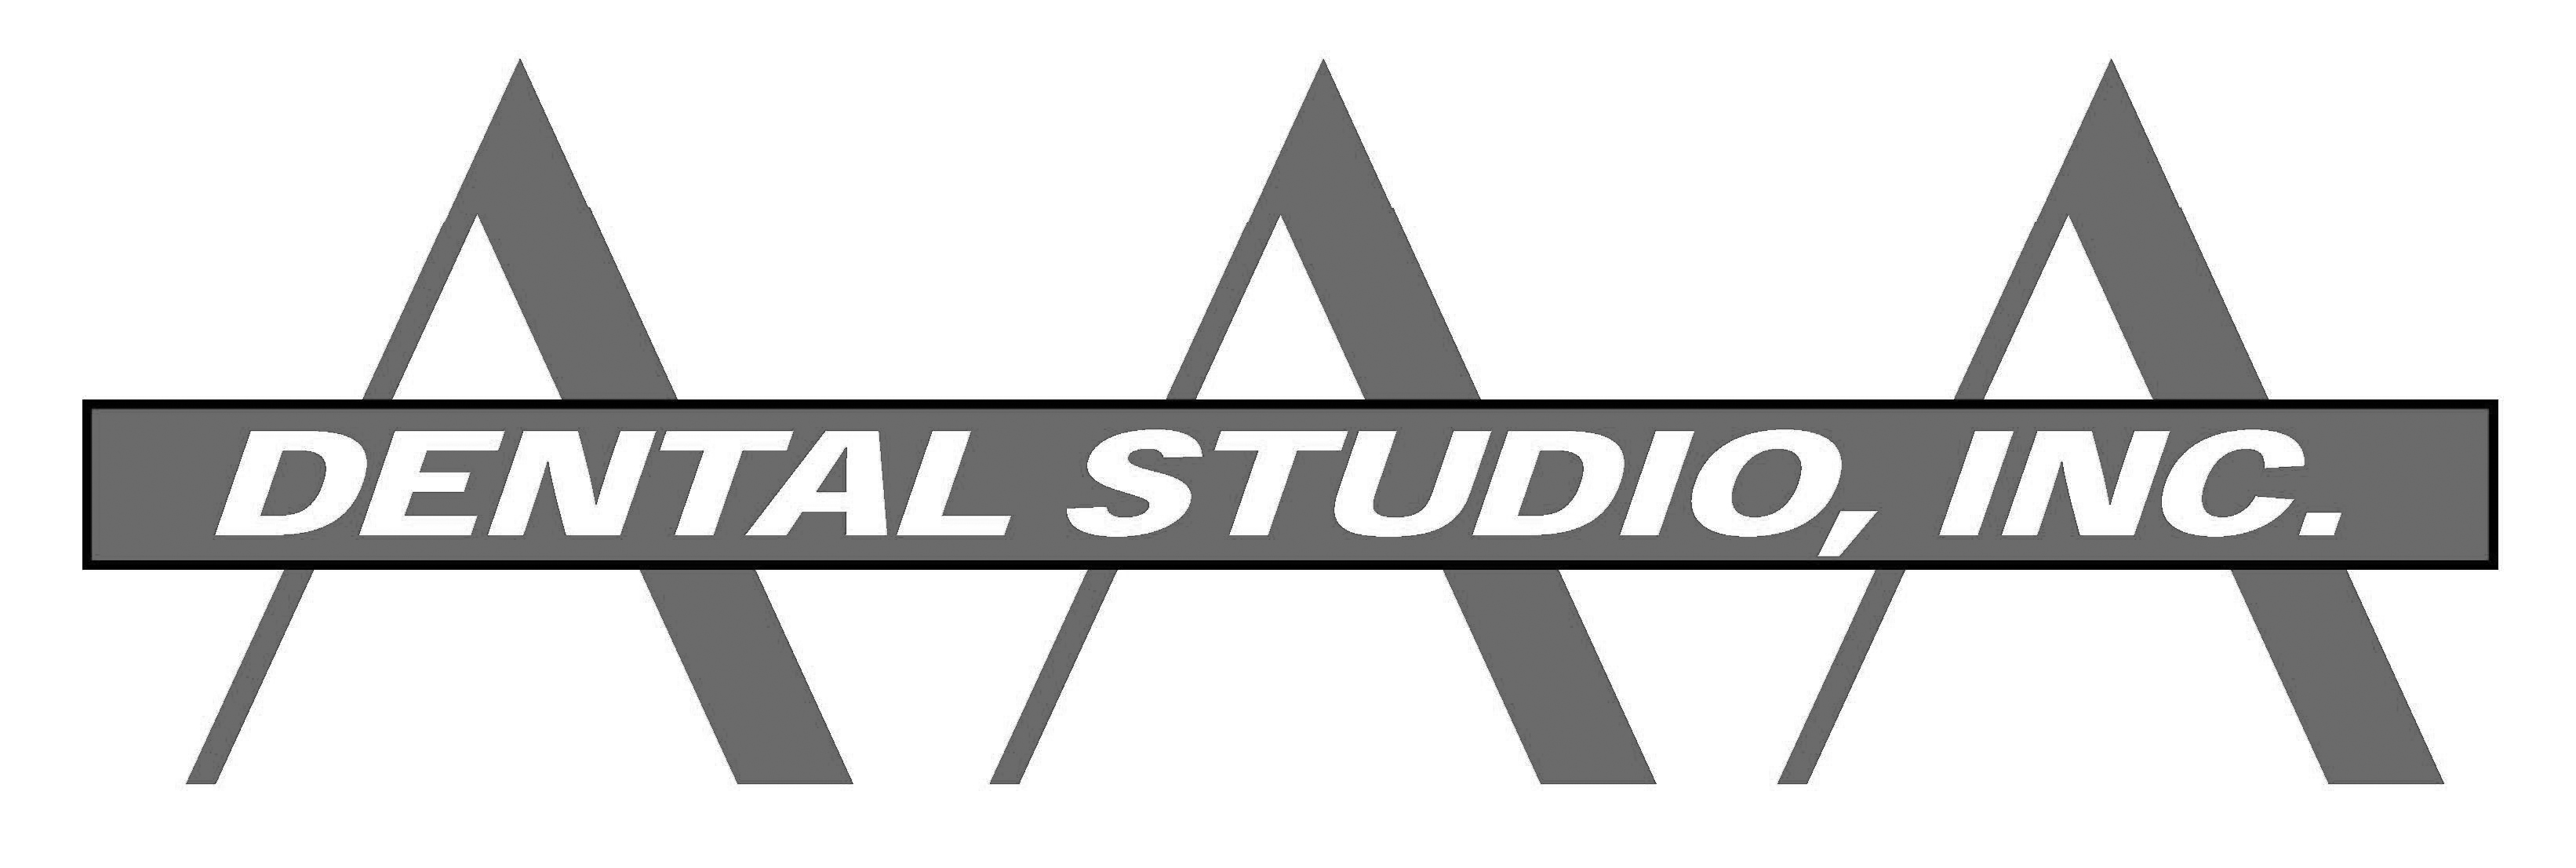 AAA Dental Studio, Inc.